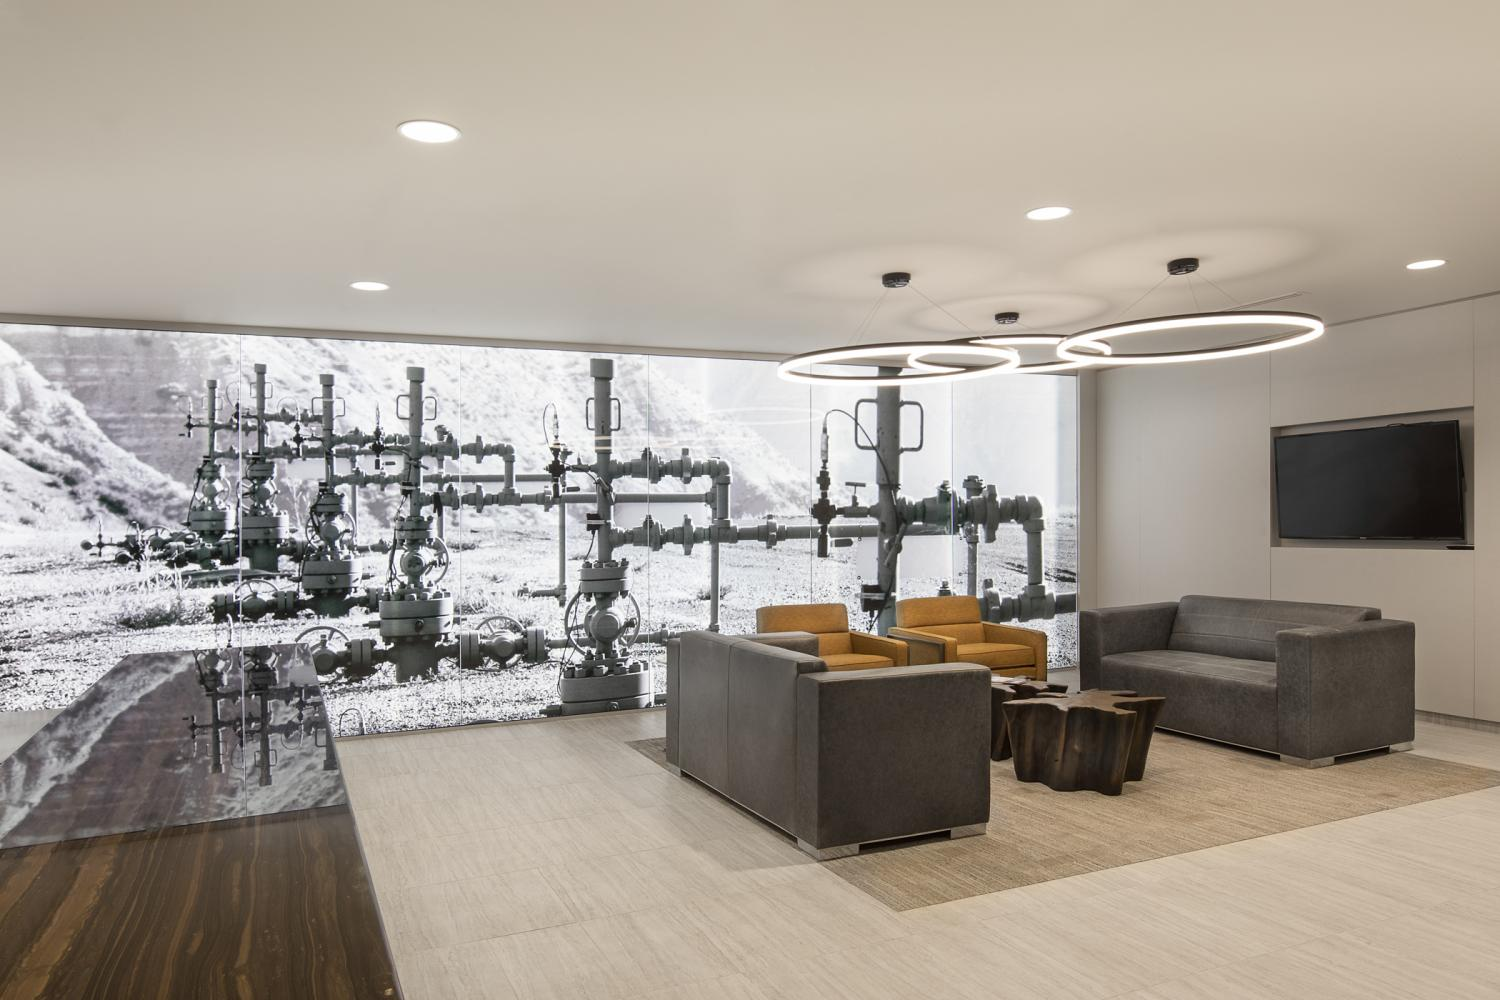 Caerus Oil and Gas Reception Area with Backlit Photo Commercial Construction Denver Colorado